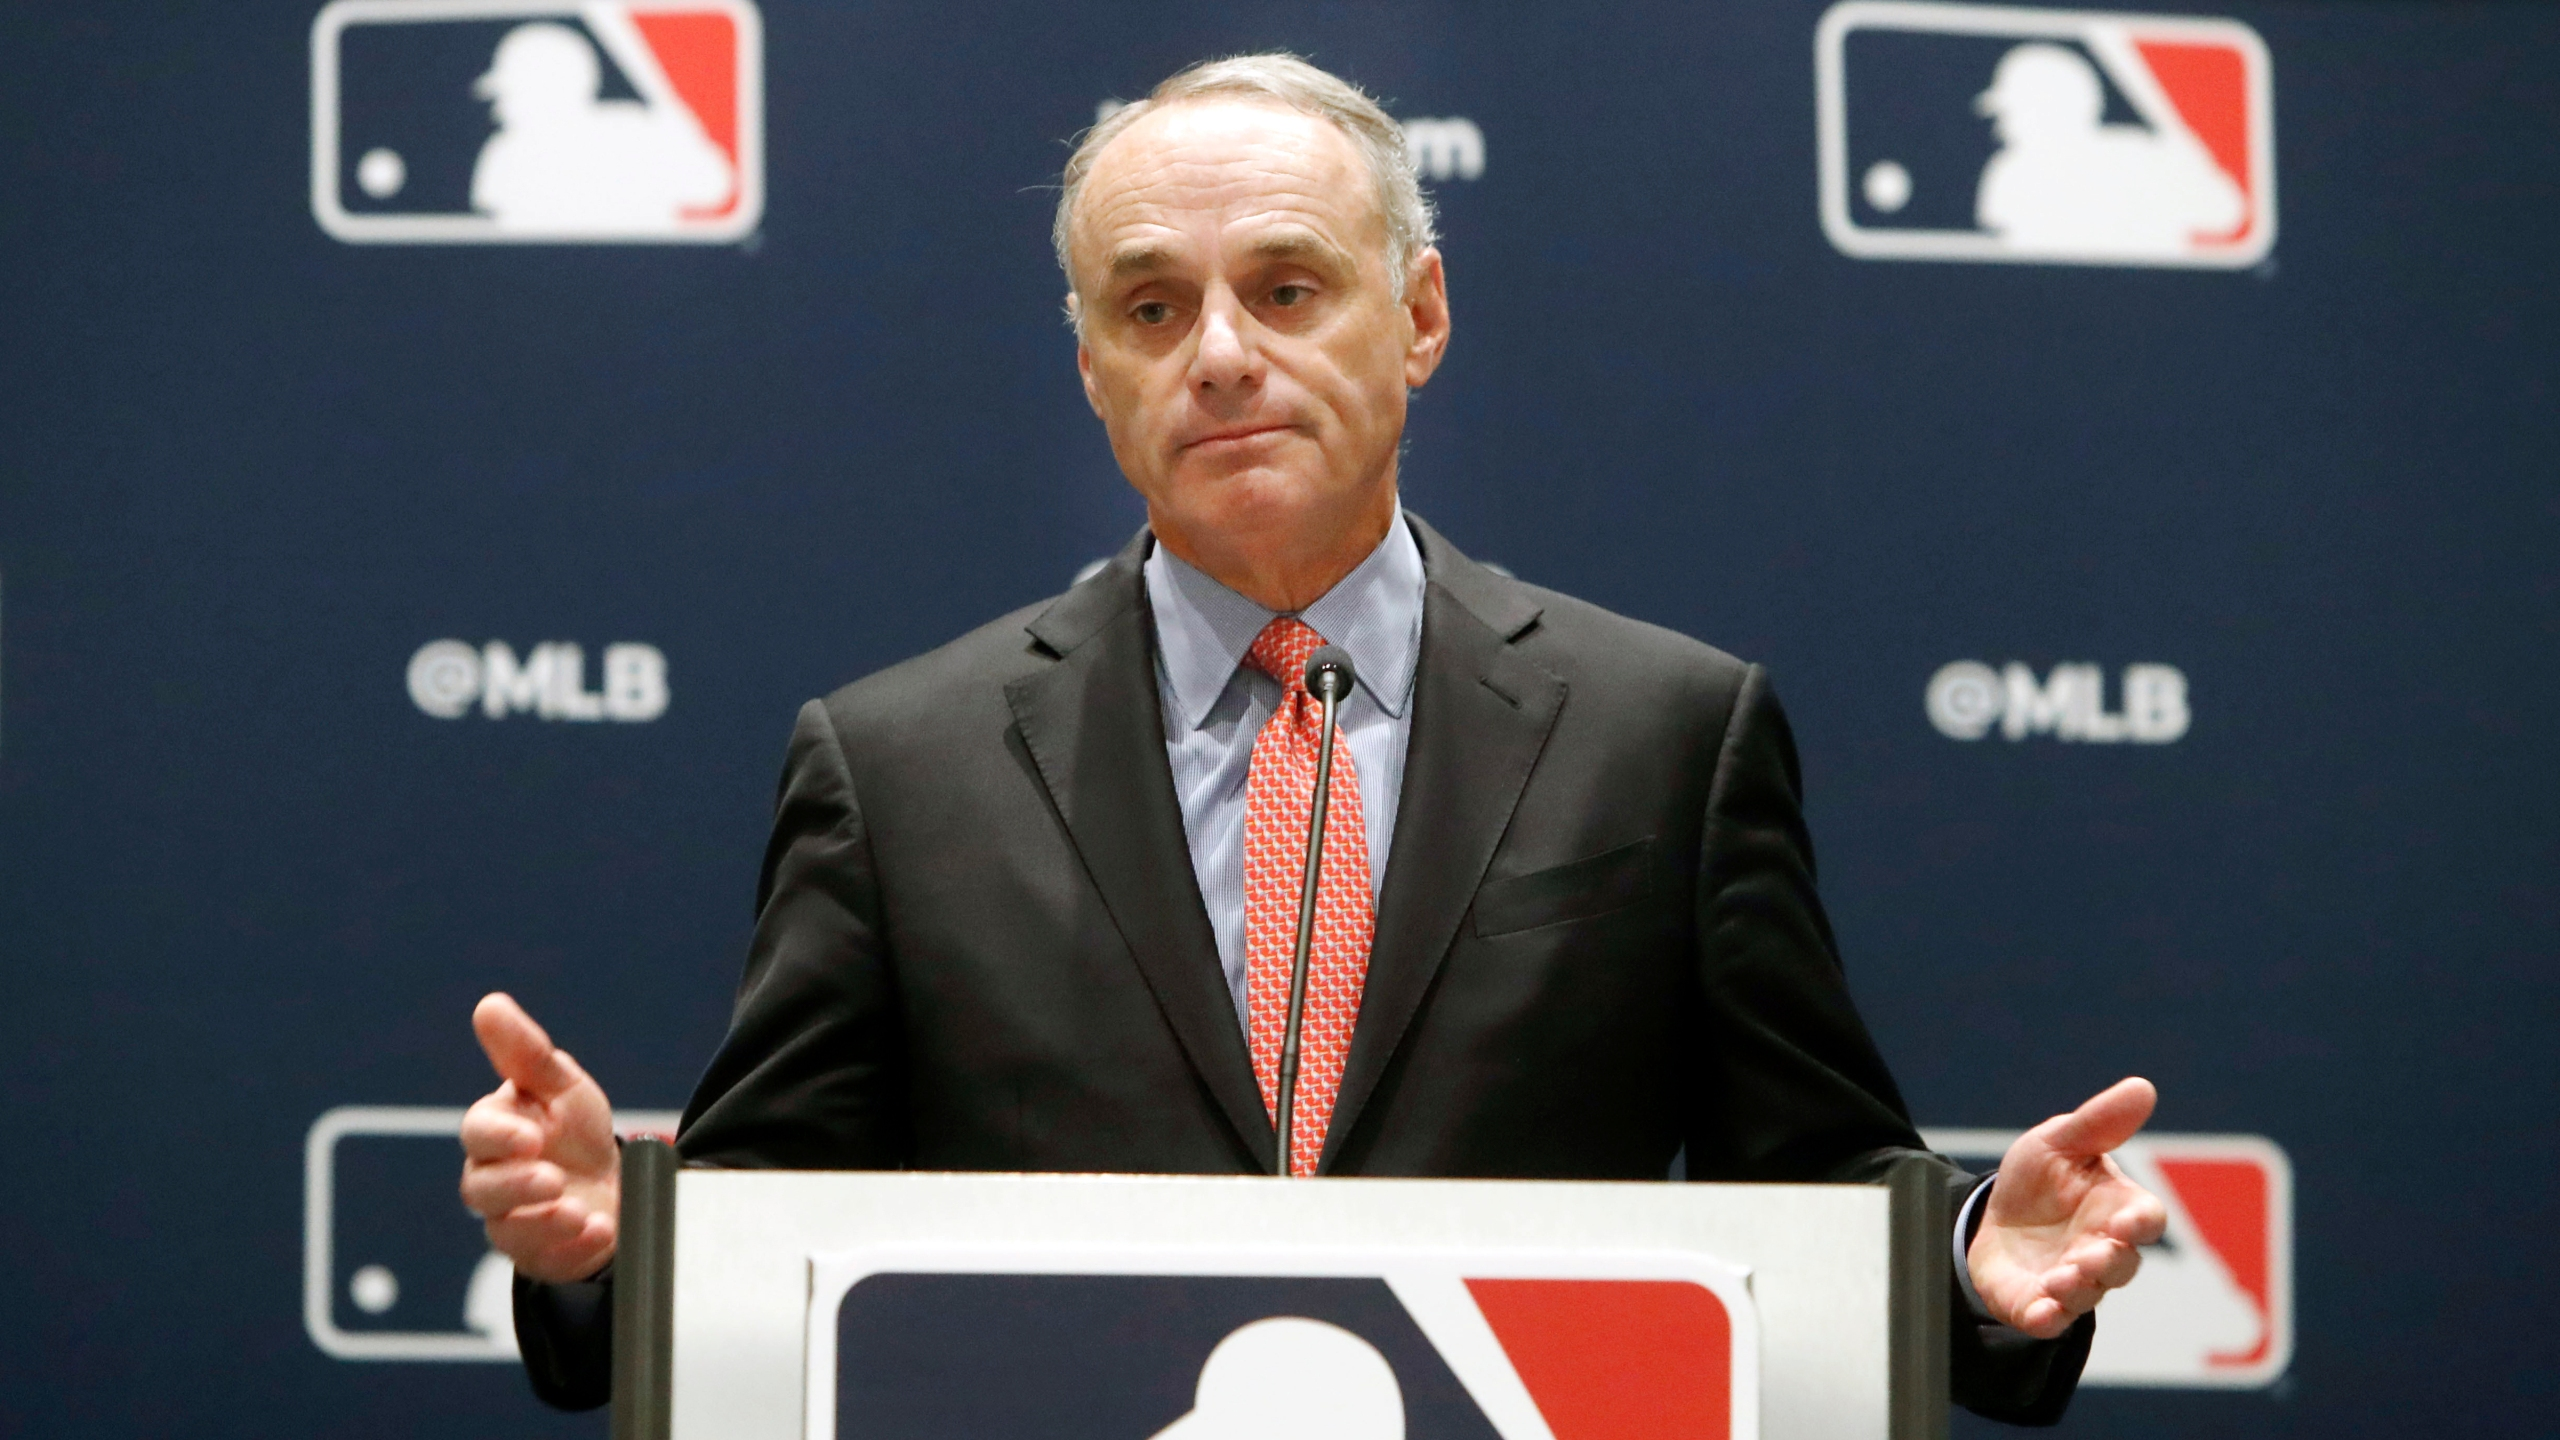 FILE - In this Nov. 21, 2019, file photo, baseball commissioner Rob Manfred speaks to the media at the owners meeting in Arlington, Texas. (AP Photo/LM Otero, File)